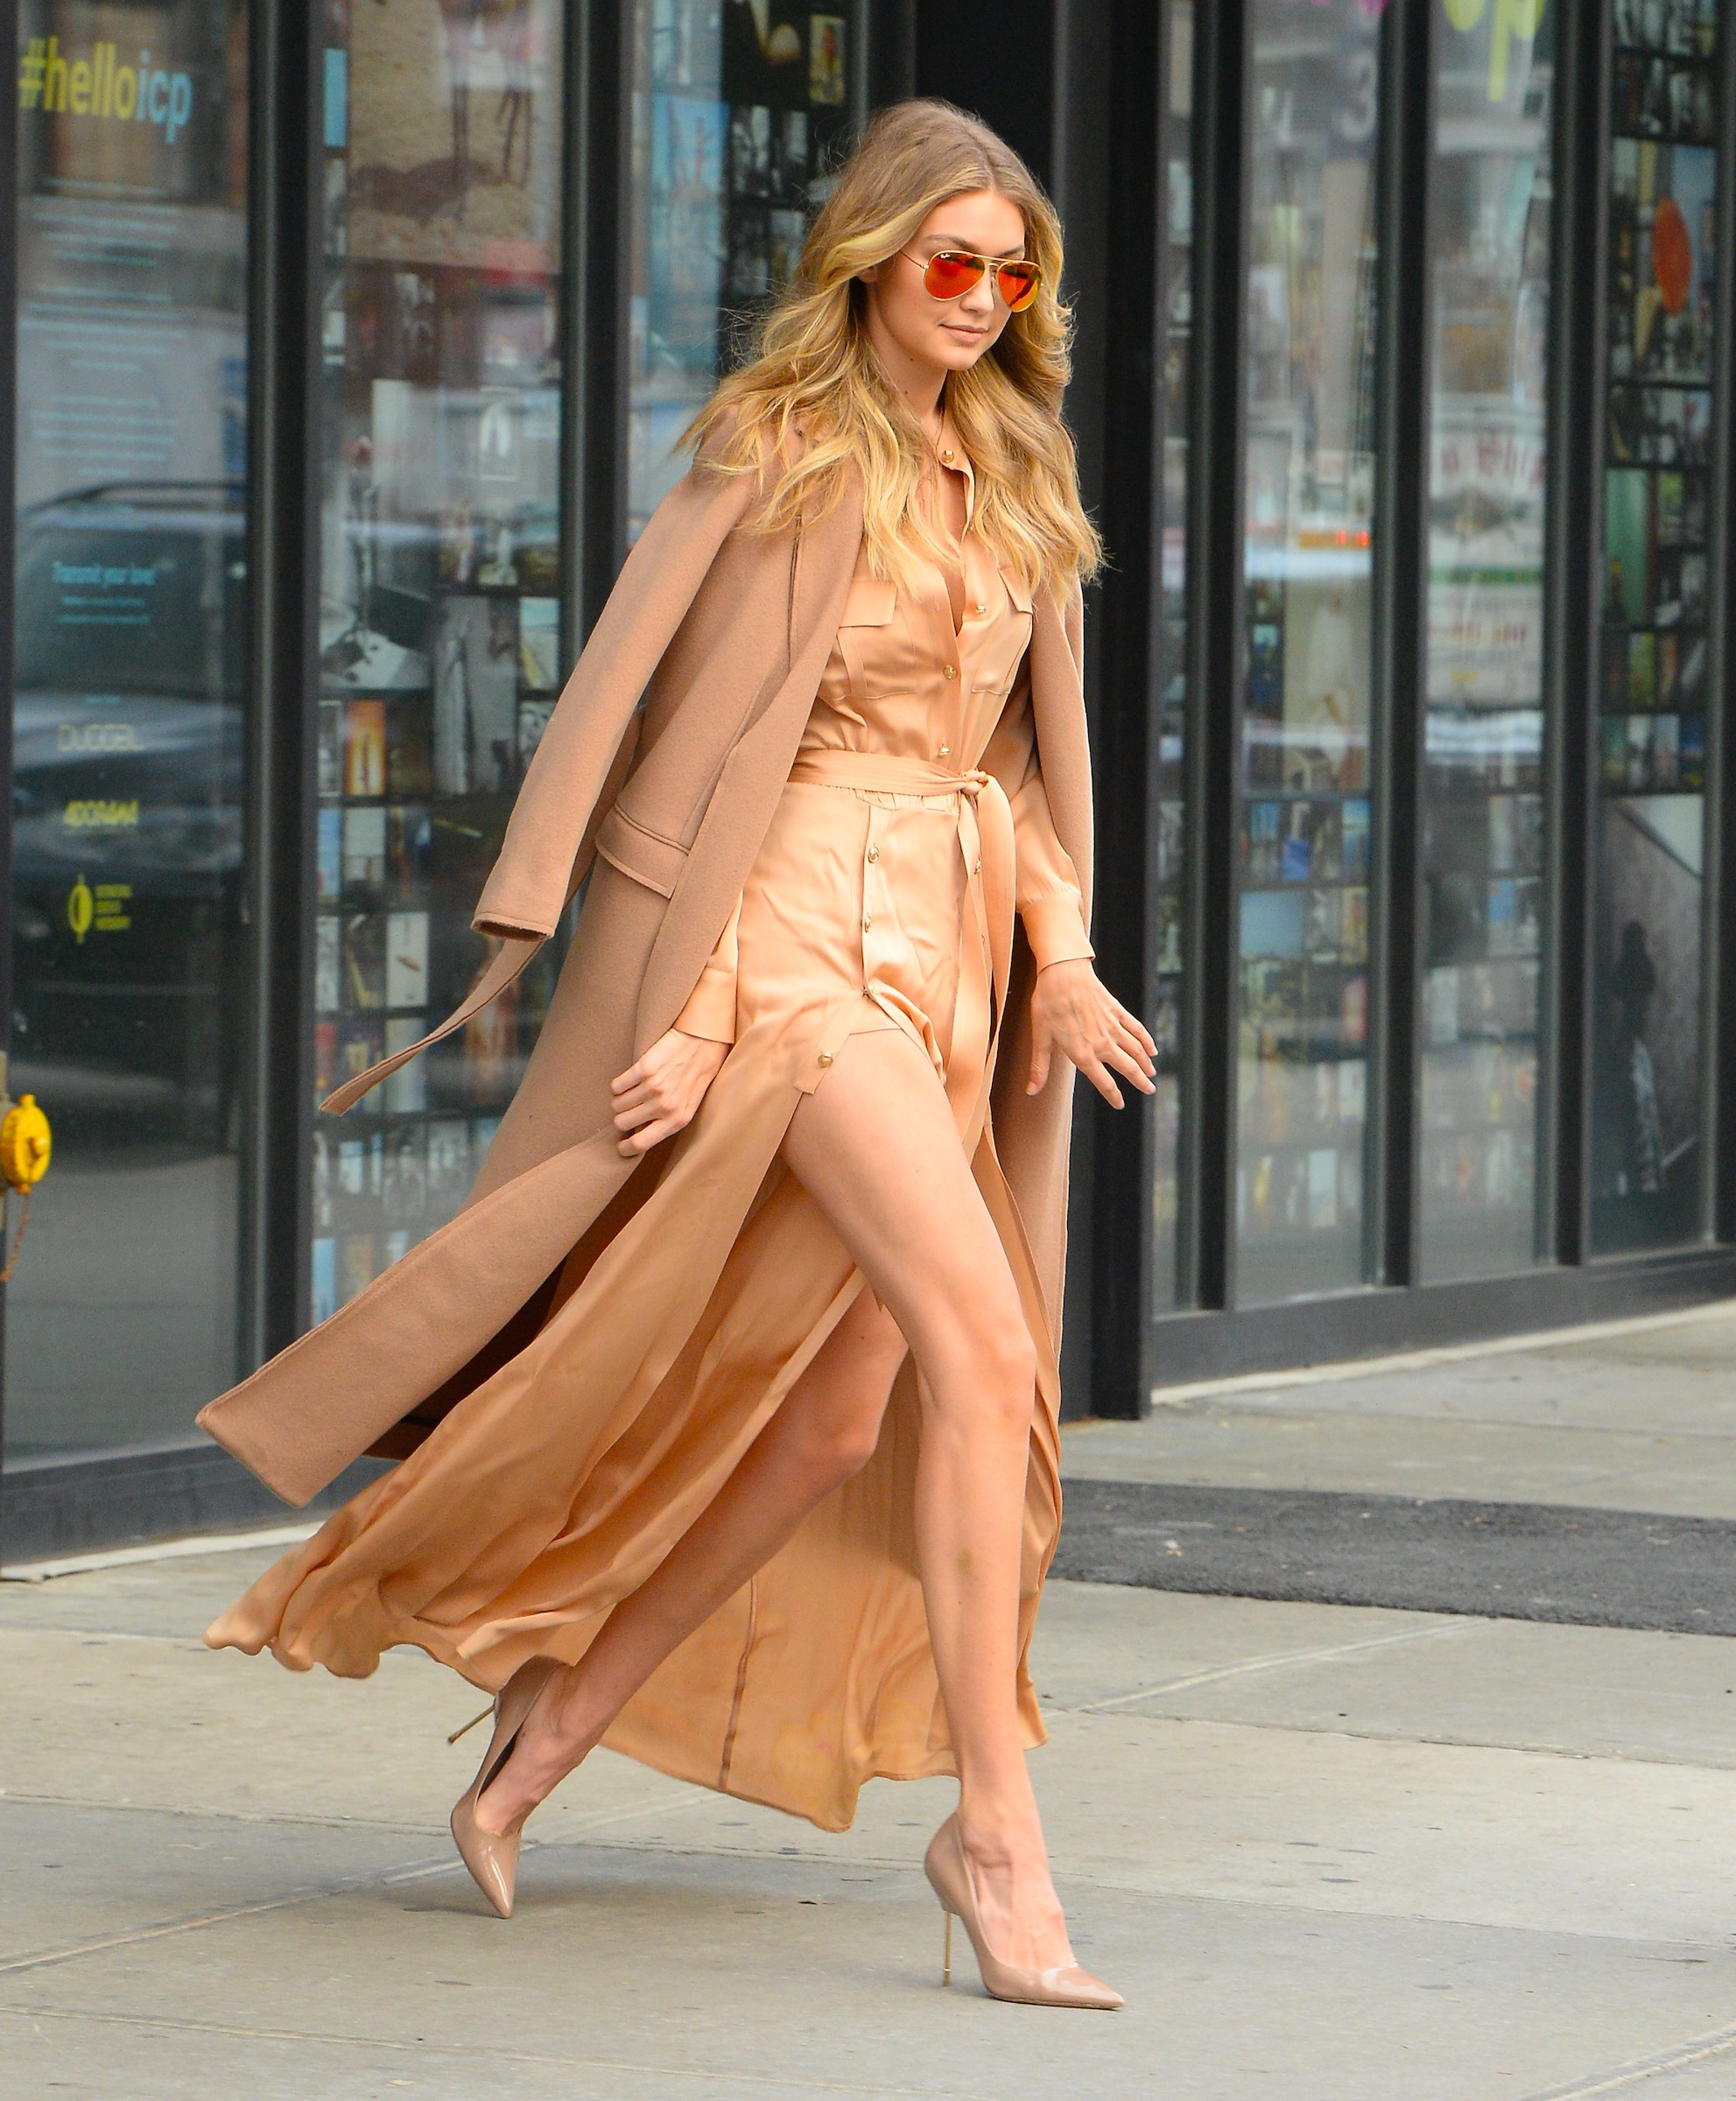 NEW YORK, NY - DECEMBER 08:  Model Gigi Hadid is seen walking in Soho on December 8, 2015 in New York City.  (Photo by Raymond Hall/GC Images) (Foto: GC Images)